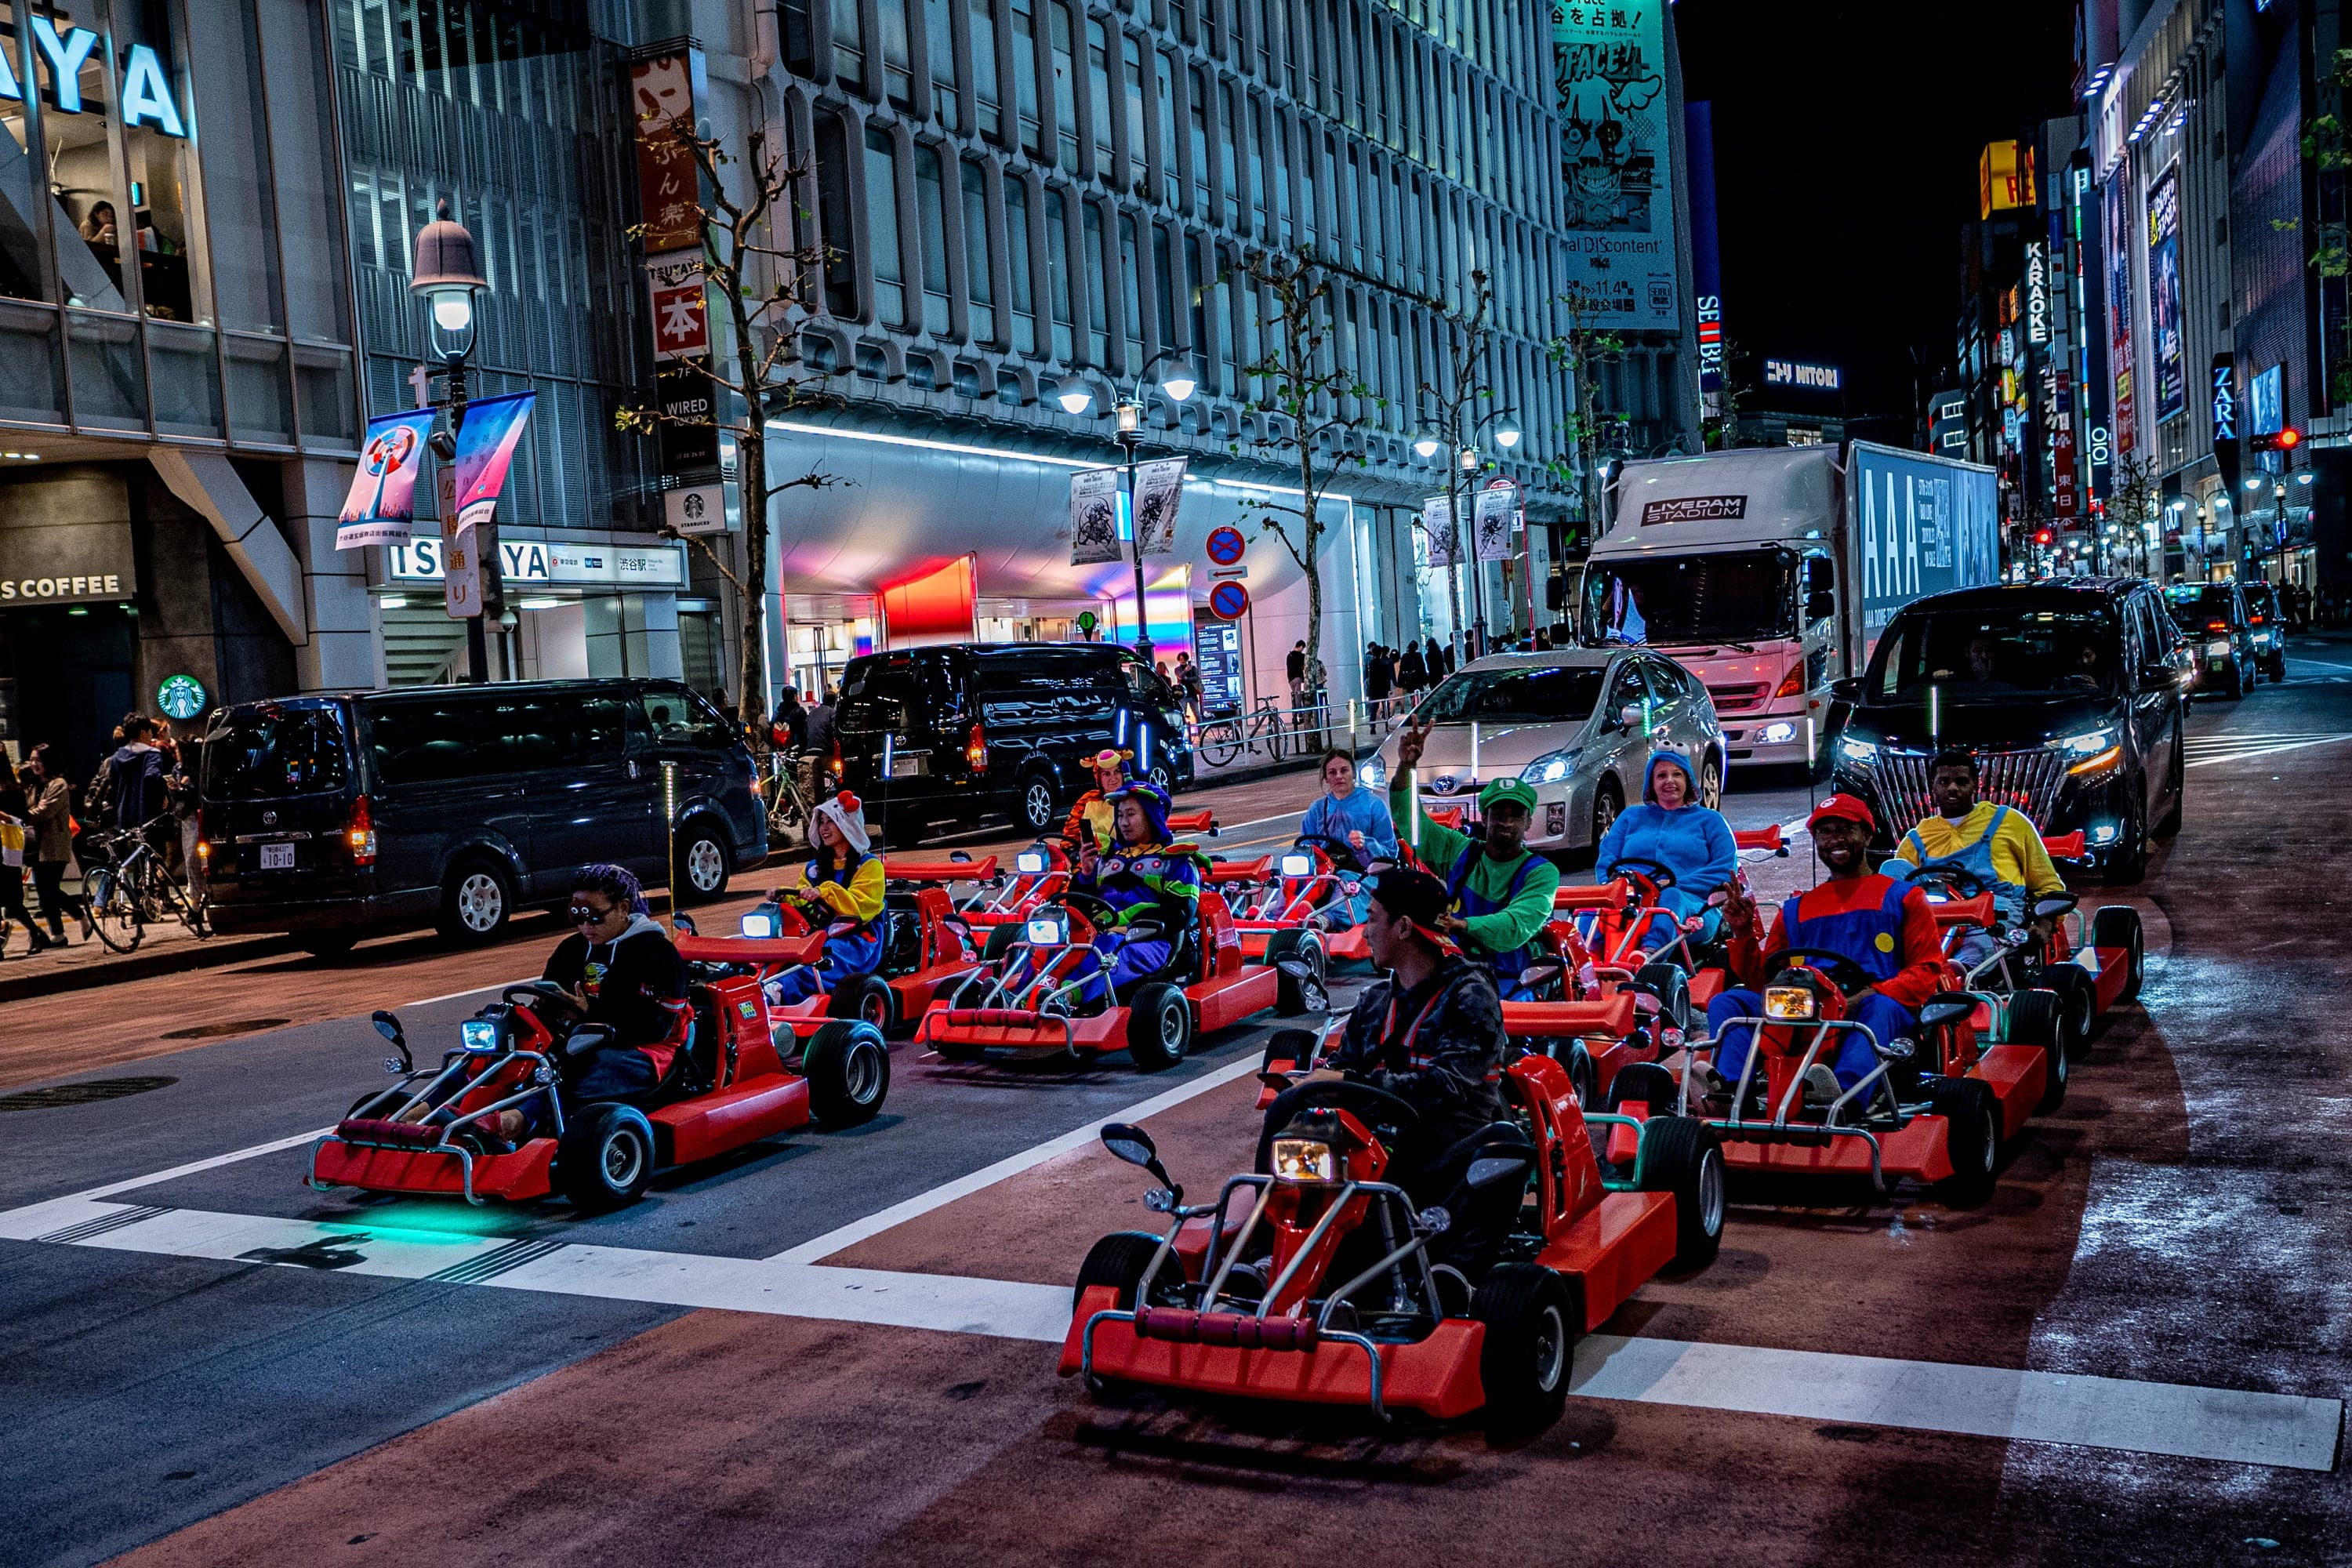 Rent a Go-Kart and ride in Tokyo